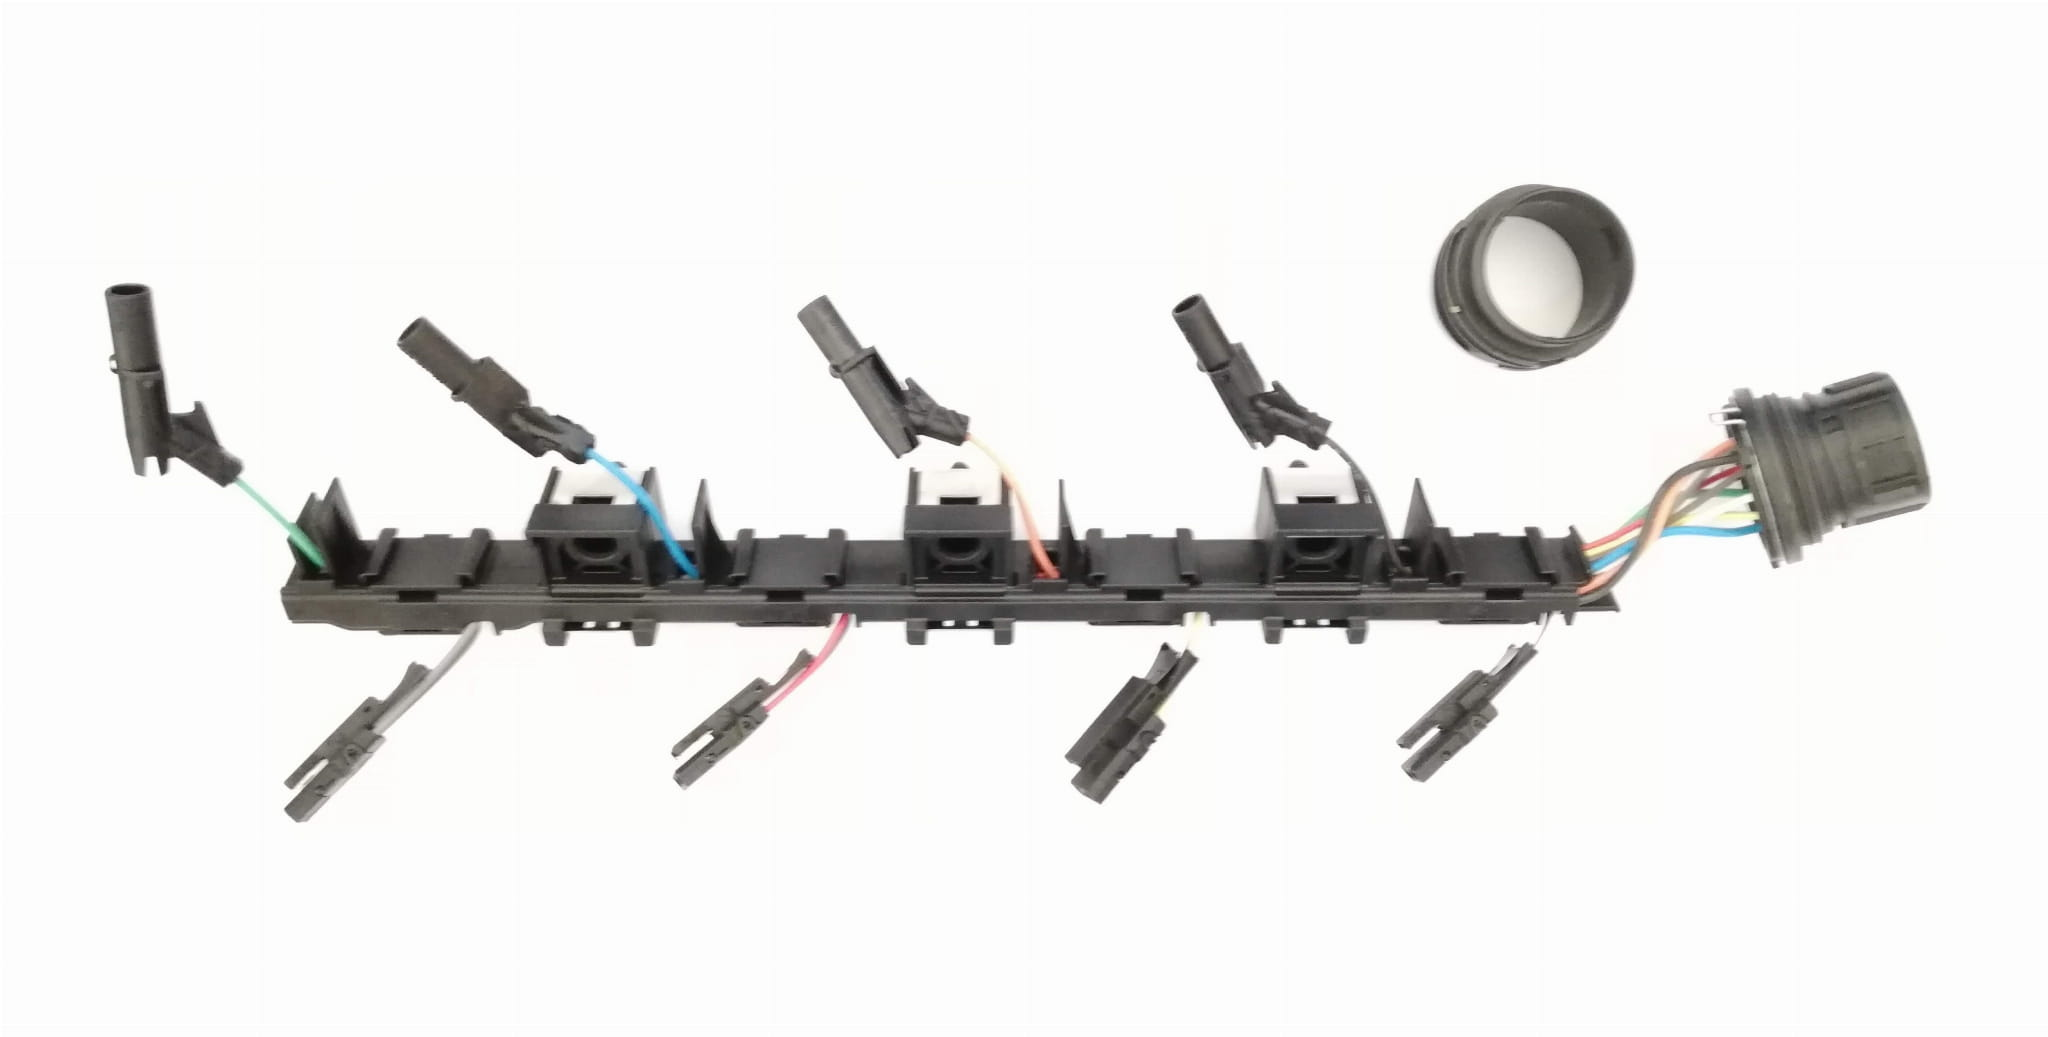 Injector wiring loom with glow plug connections 2.0 TDI